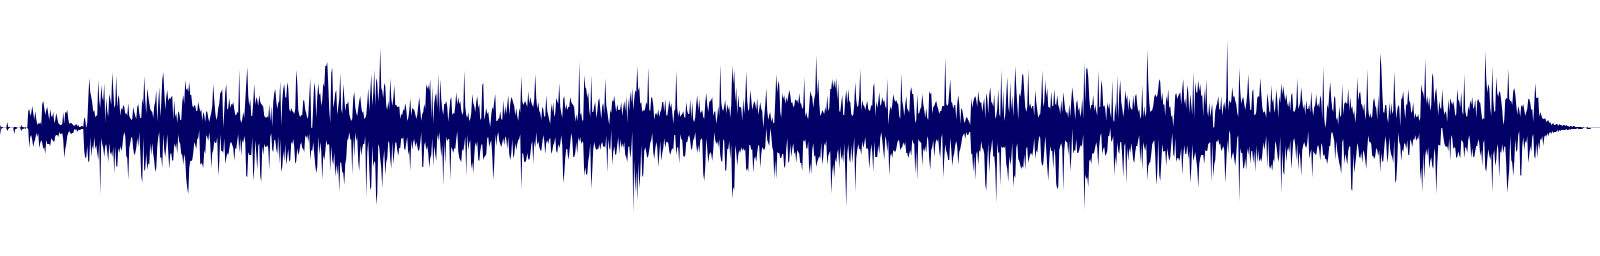 waveform of track #116239